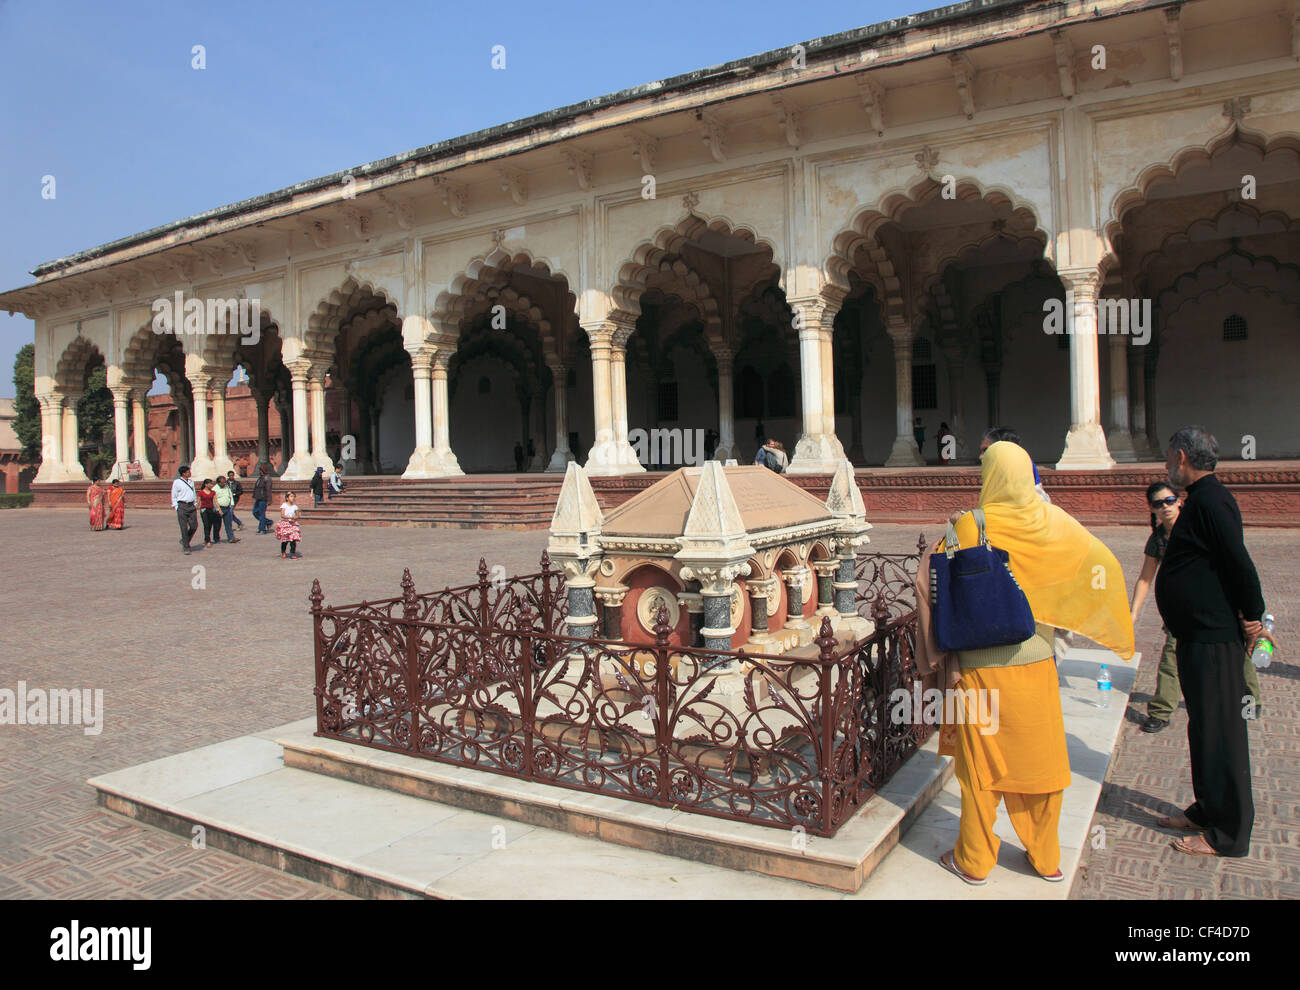 India, Uttar Pradesh, Agra, Fort, Diwan-i-Am, Hall of Public Audiences, John Colvin grave, - Stock Image